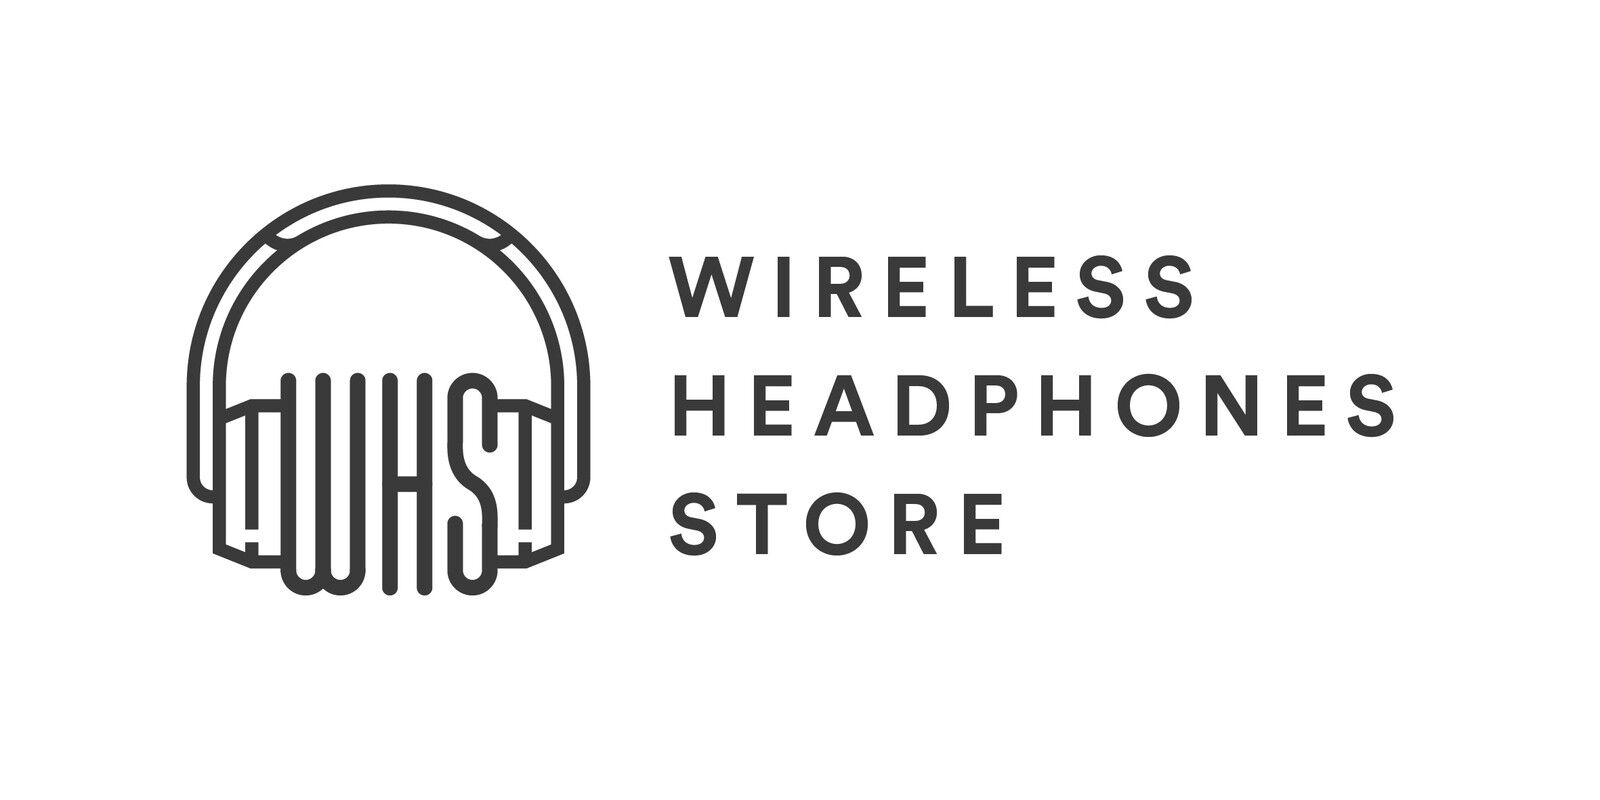 Wireless Headphones Store